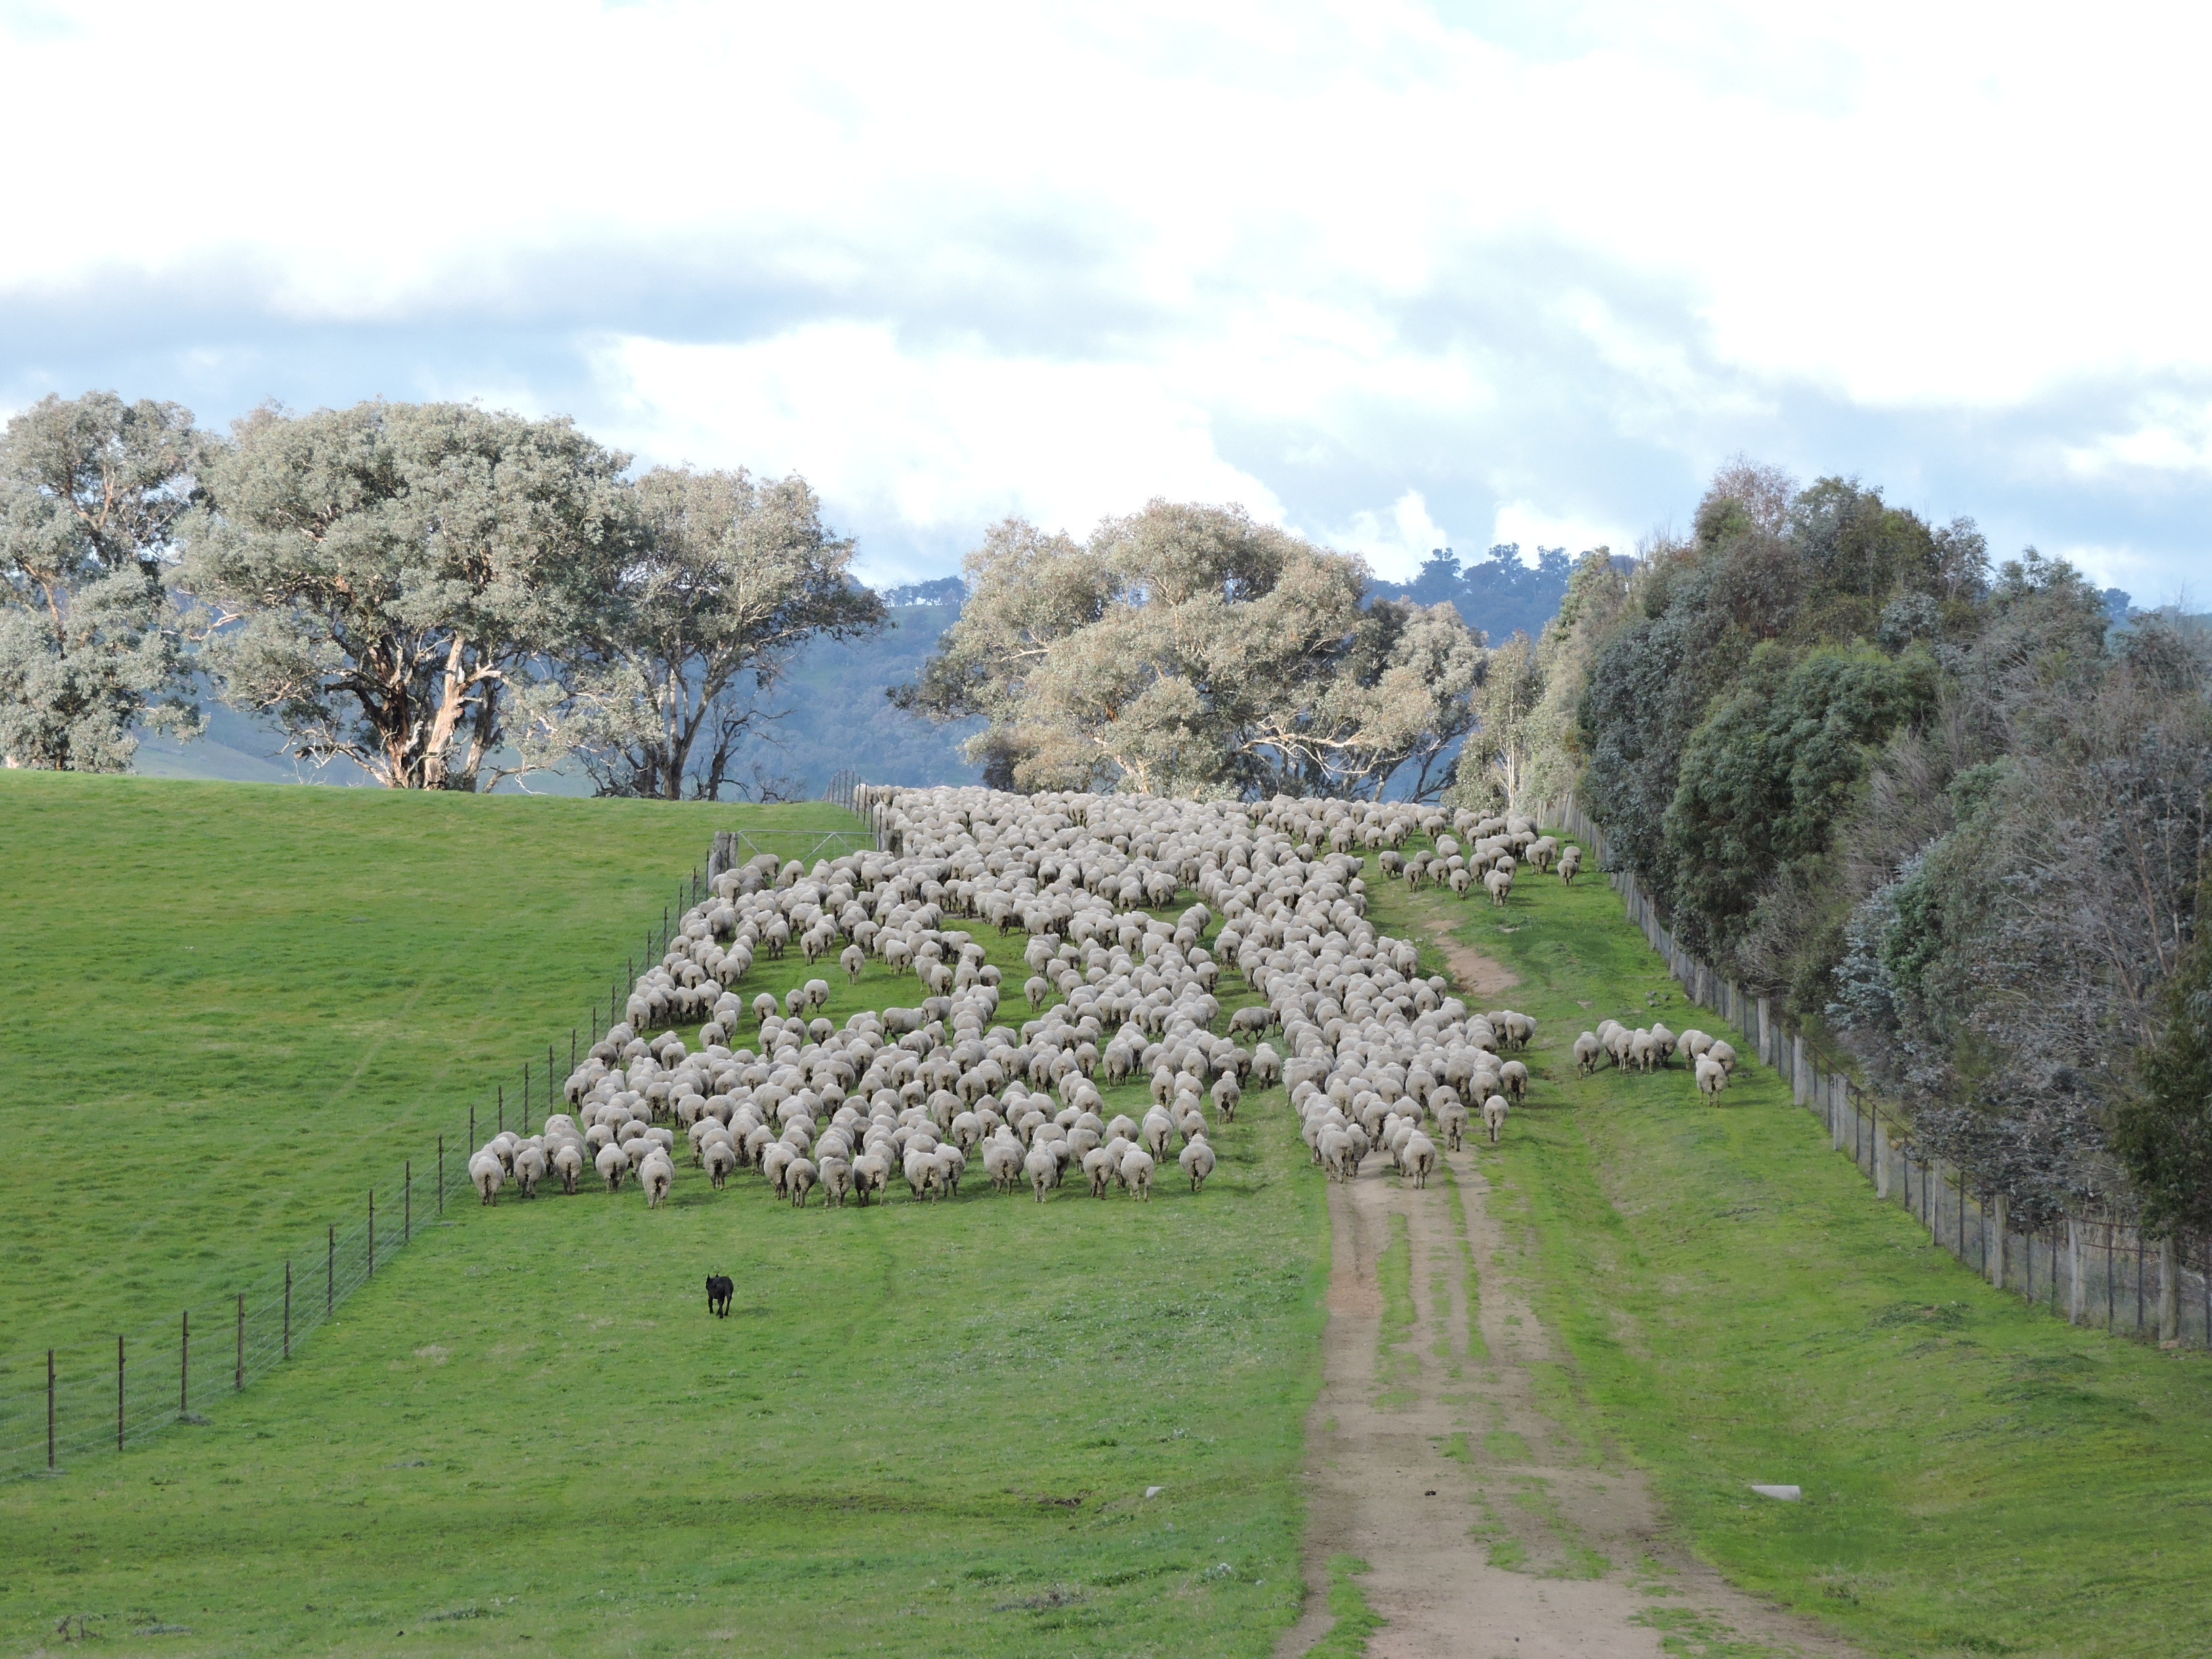 Moving sheep down laneway